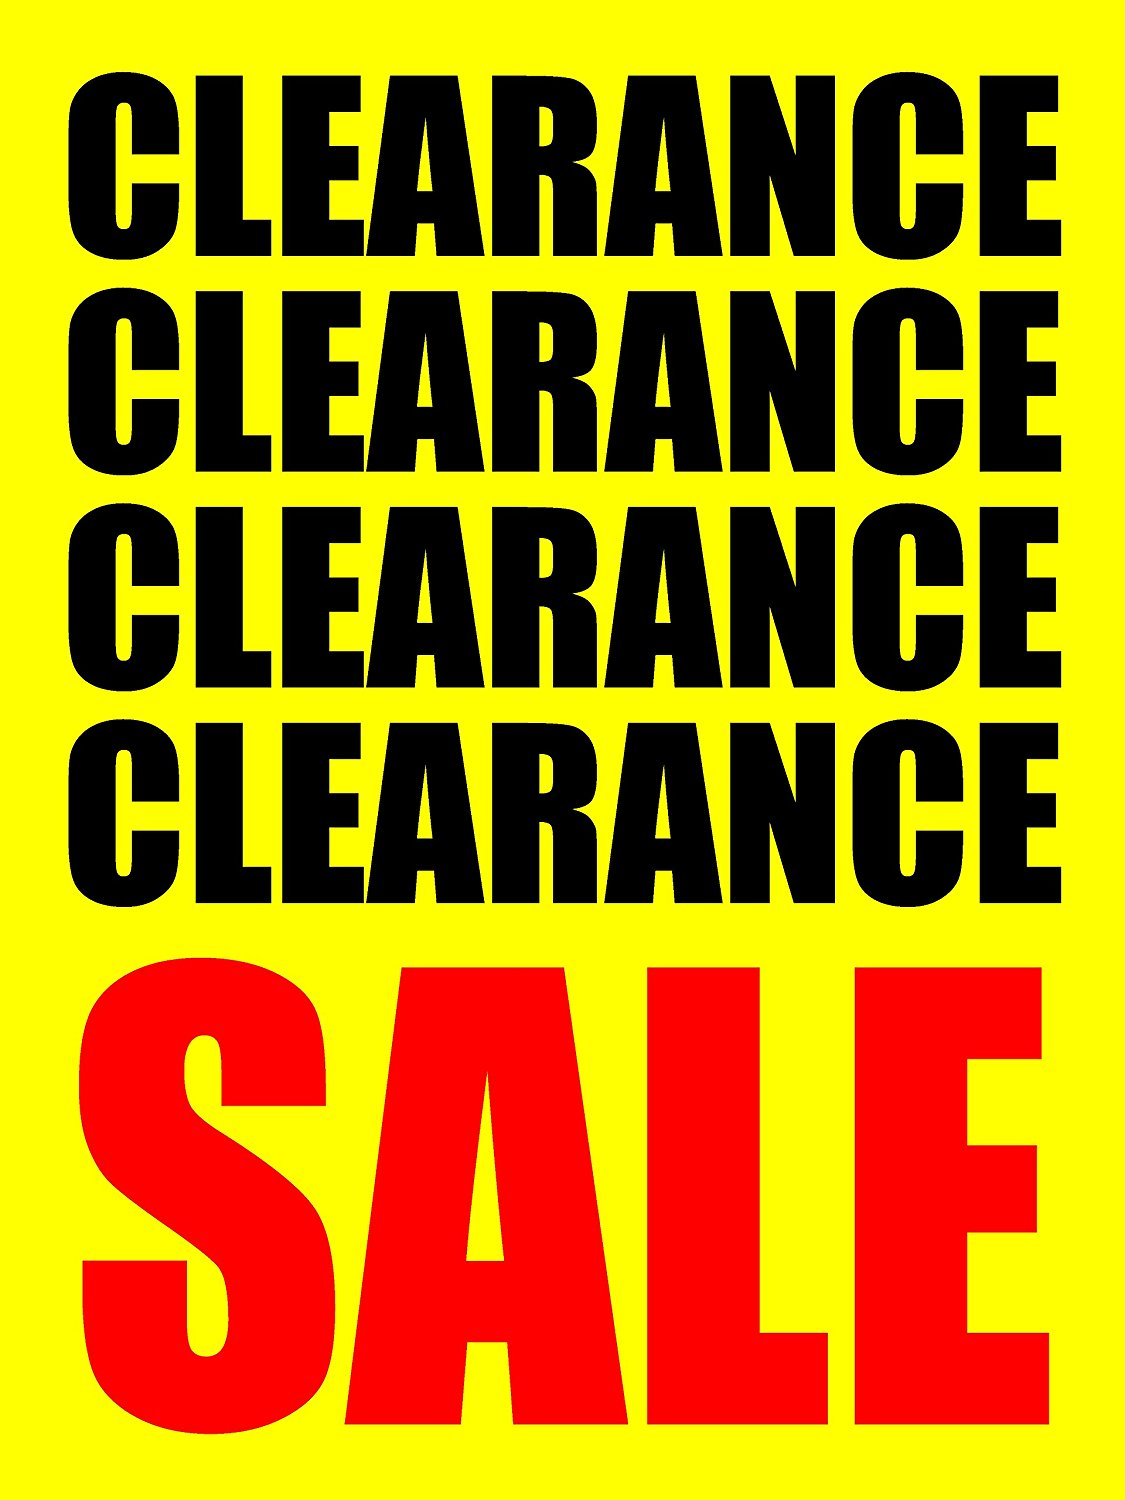 photograph relating to Free Printable Sale Signs for Retail identified as Obtain Clearance Sale Retail outlet Organization Retail Show Symptoms, 18